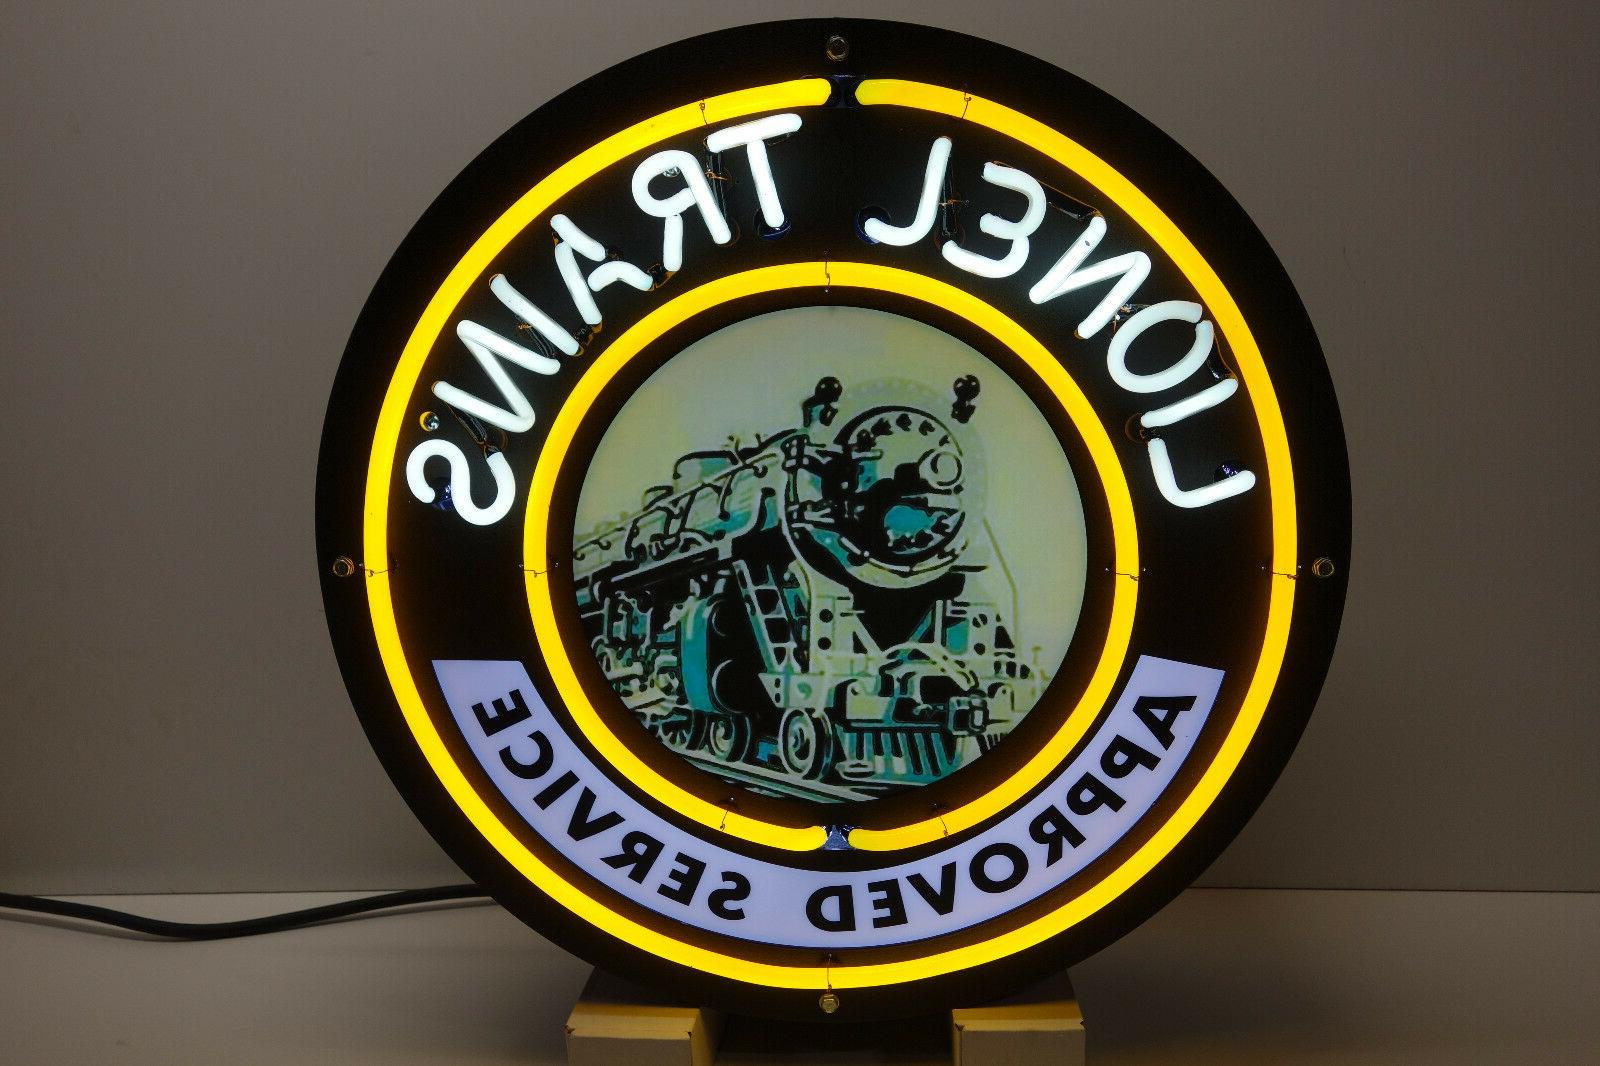 train corporation neon sign for service stations